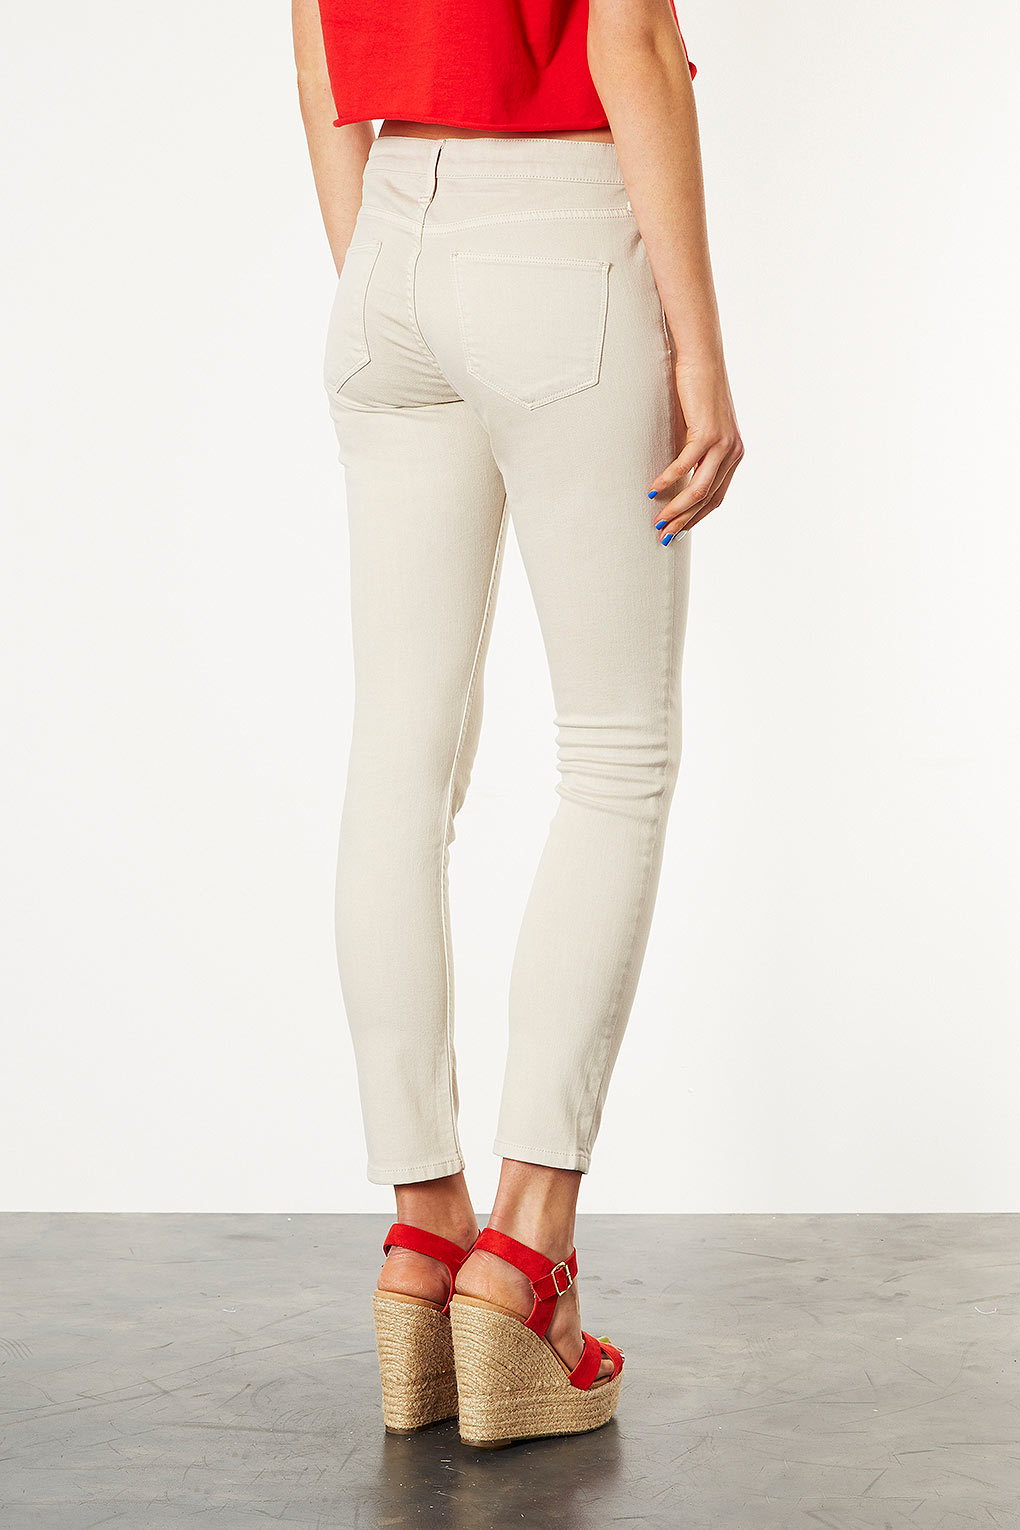 Topshop Cream Baxter Skinny Jeans In Natural Lyst